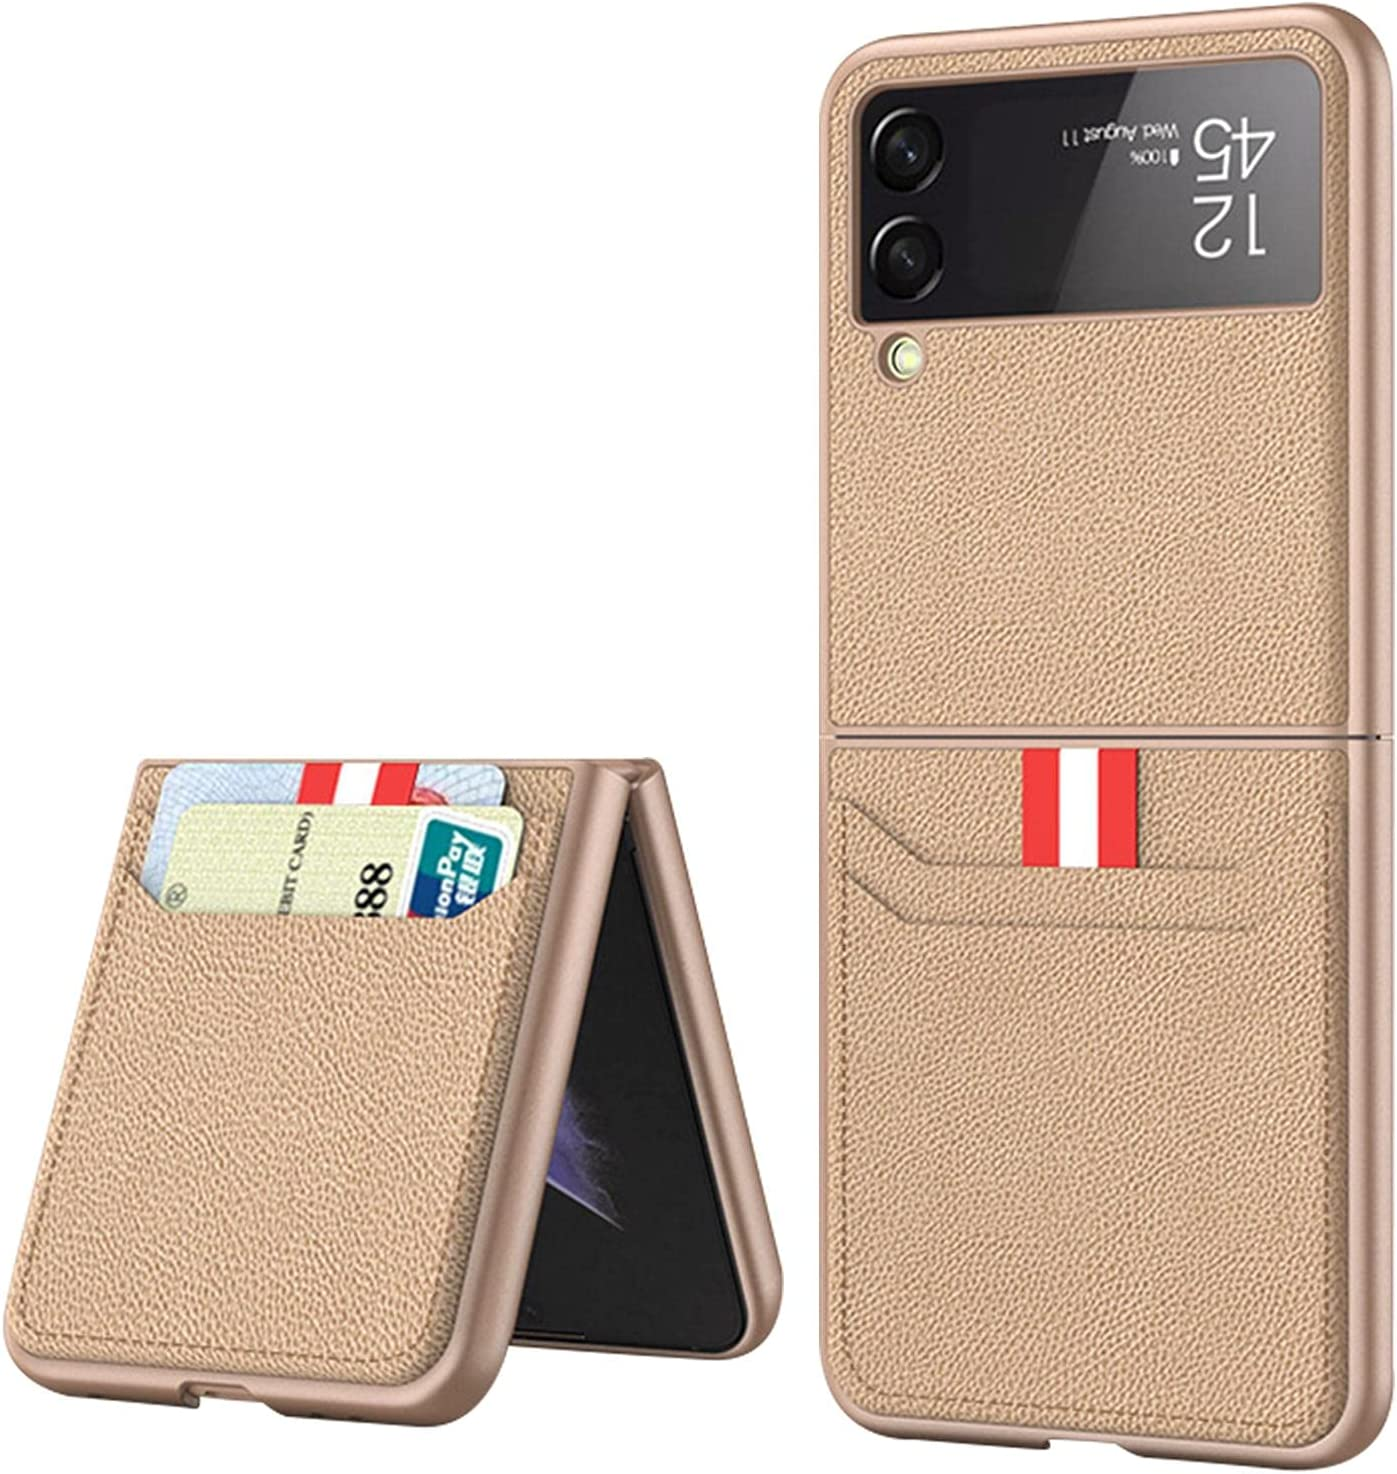 Phone Case for Samsung Galaxy Z Flip 3 5G | Foldable Premium Thin PU Leather Hard PC Slim Phone Case | Durable Anti-Scratch Protective Case Cover for Galaxy Z Flip 3 5G 2021